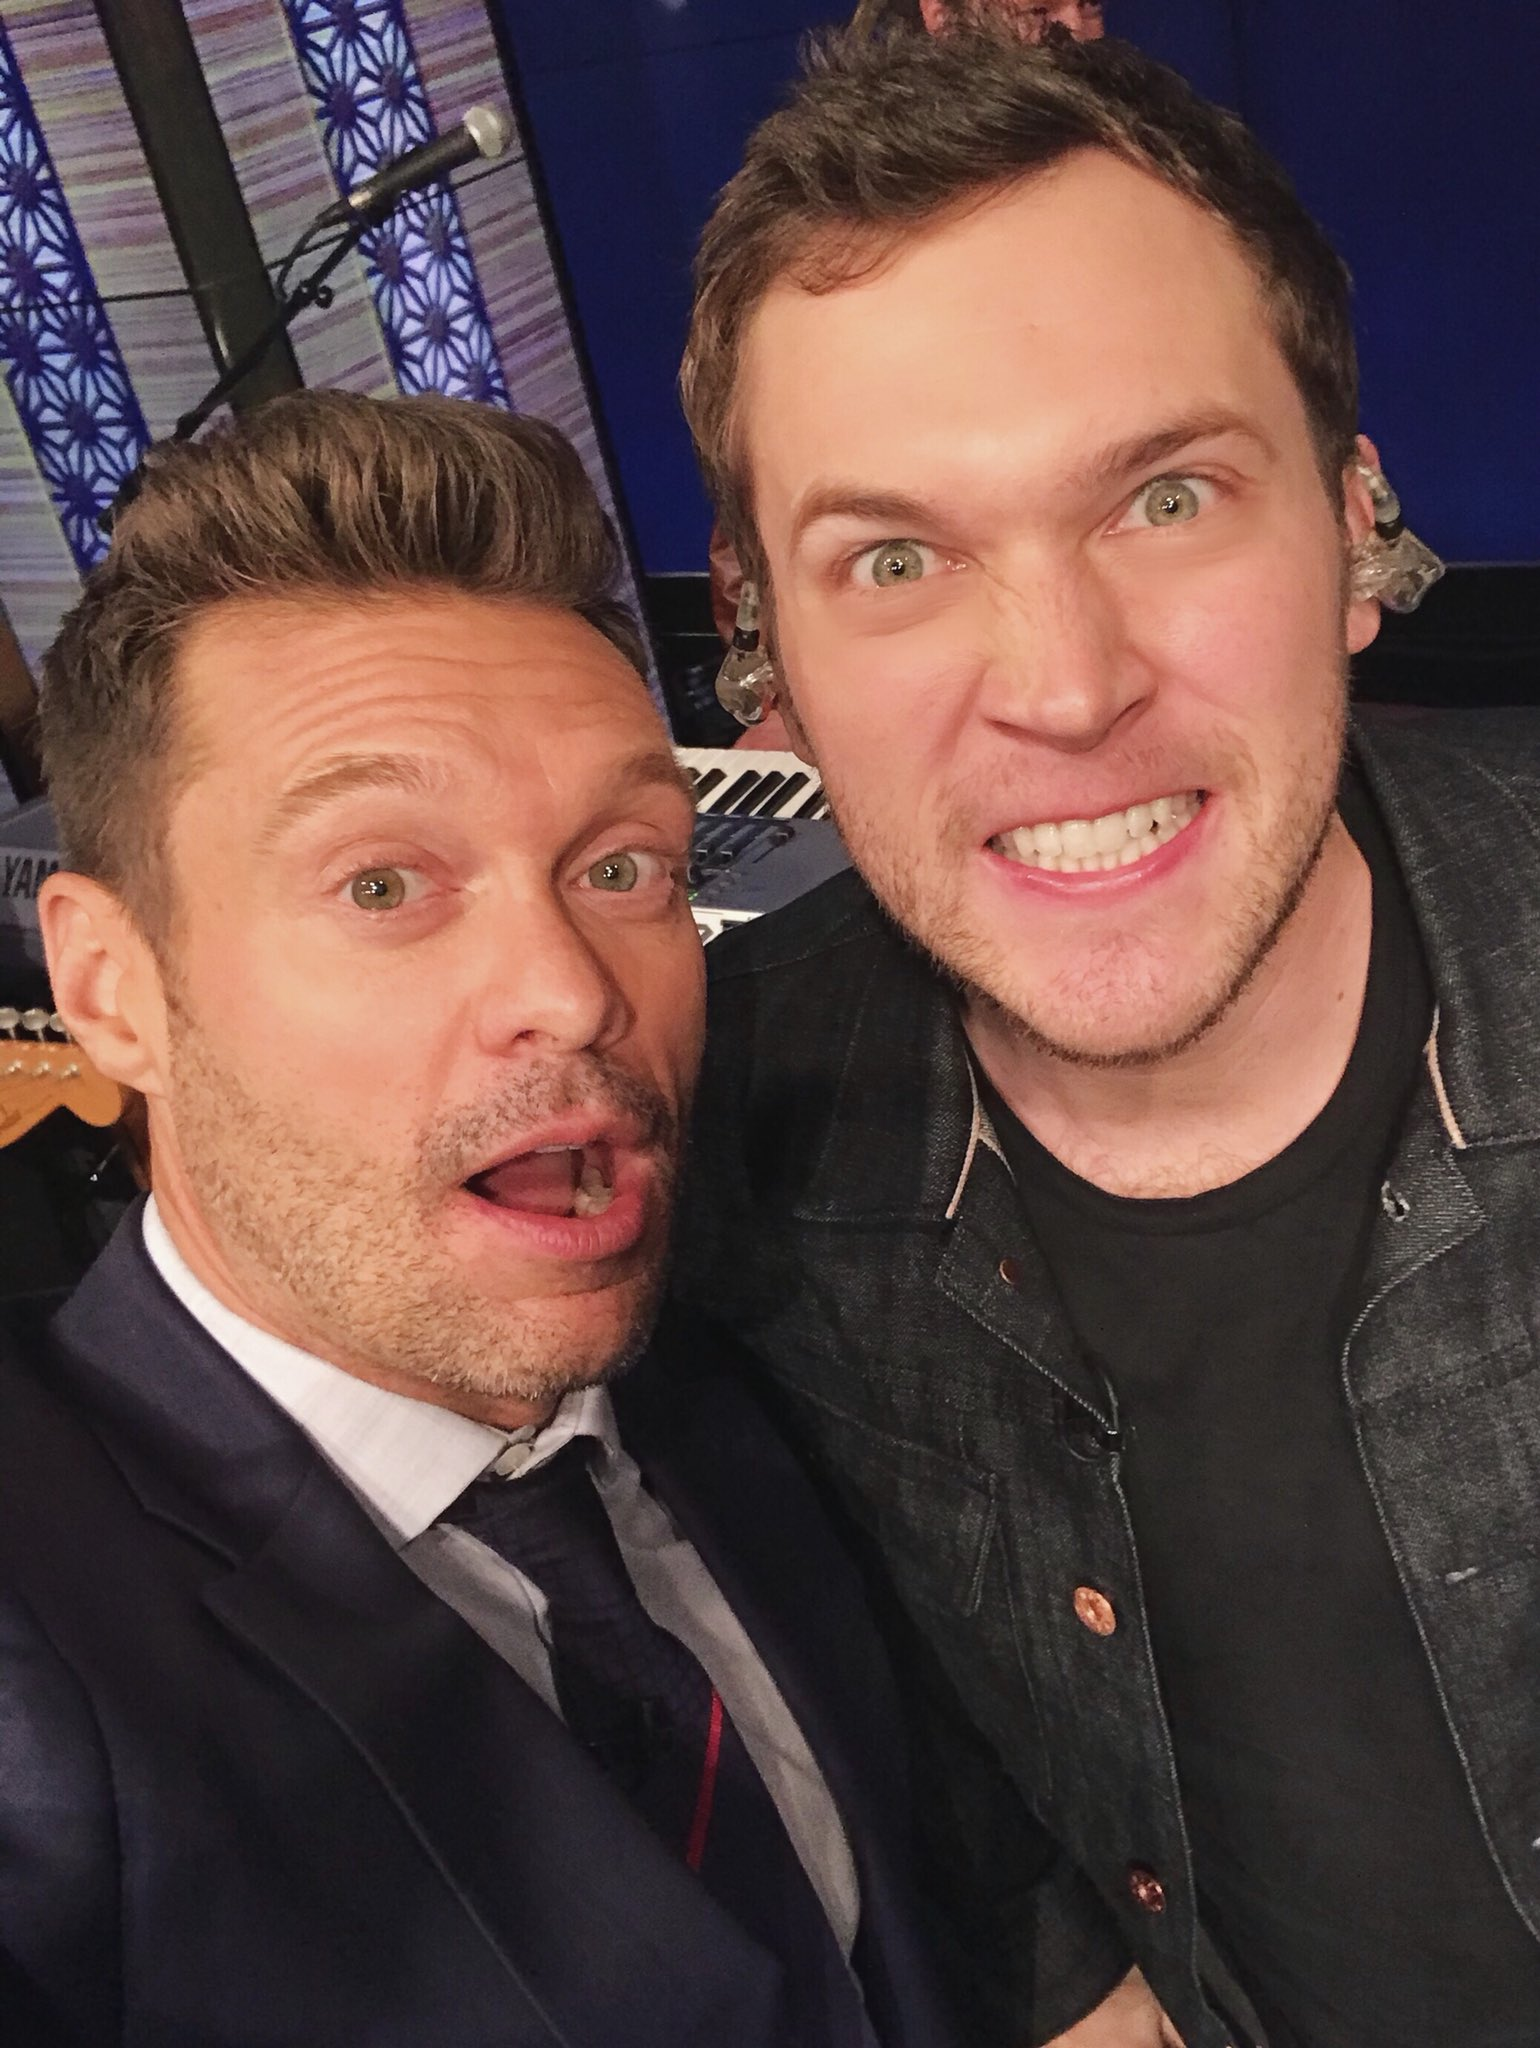 Just 2 Georgia boys hustlin @Phillips #kellyandryan https://t.co/buqGQZProG